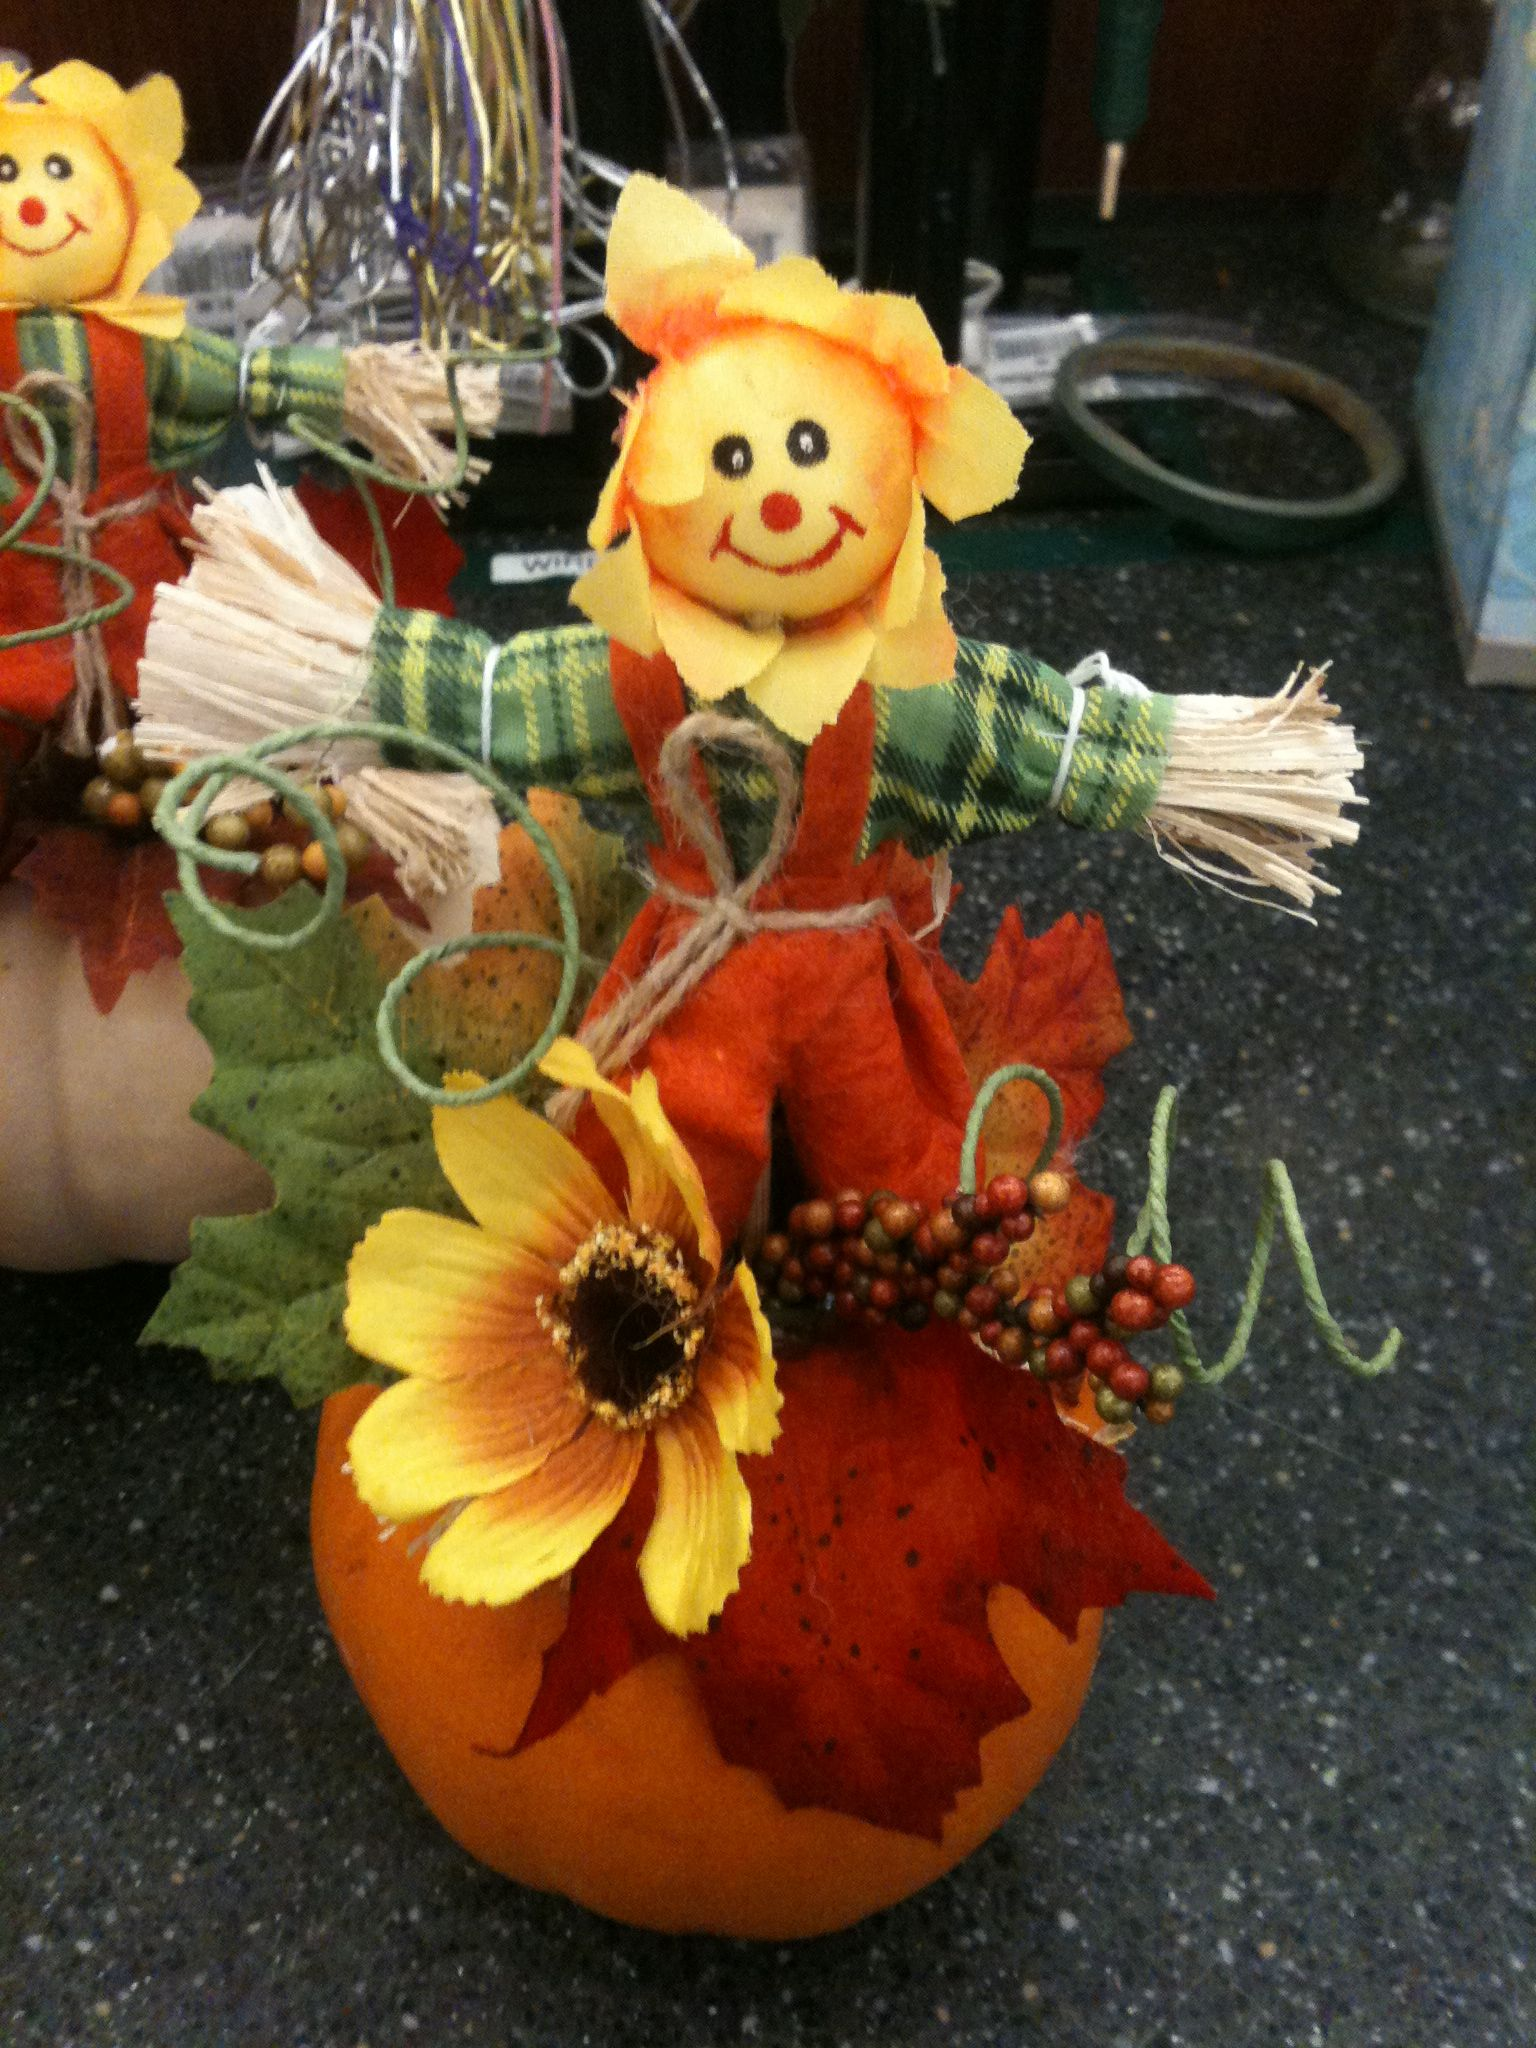 Mini pumpkins with scarecrows